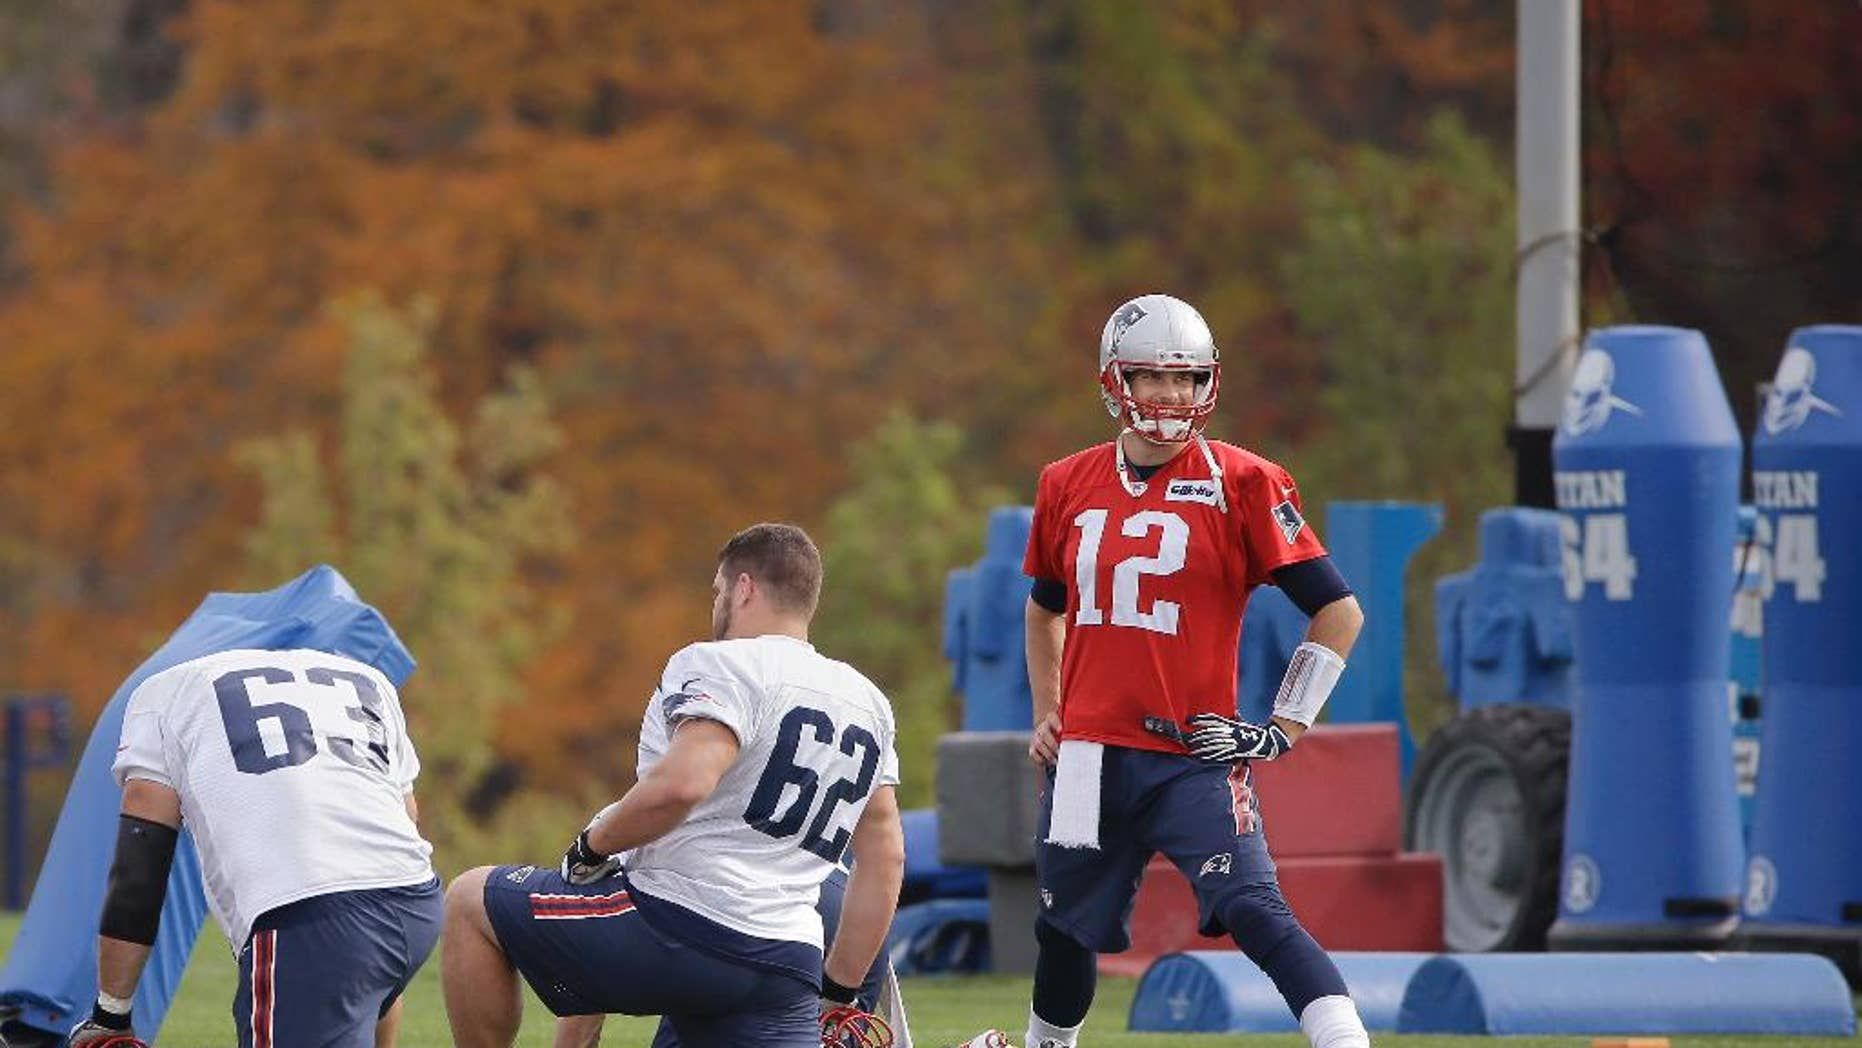 New England Patriots quarterback Tom Brady (12) stretches with offensive linemen Ryan Wendell (62) and Dan Connolly (63) before practice begins at the NFL football team's facility Wednesday, Oct. 29, 2014 in Foxborough, Mass. The Patriots (6-2) will play the Denver Broncos (6-1) Sunday in Foxborough. (AP Photo/Stephan Savoia)